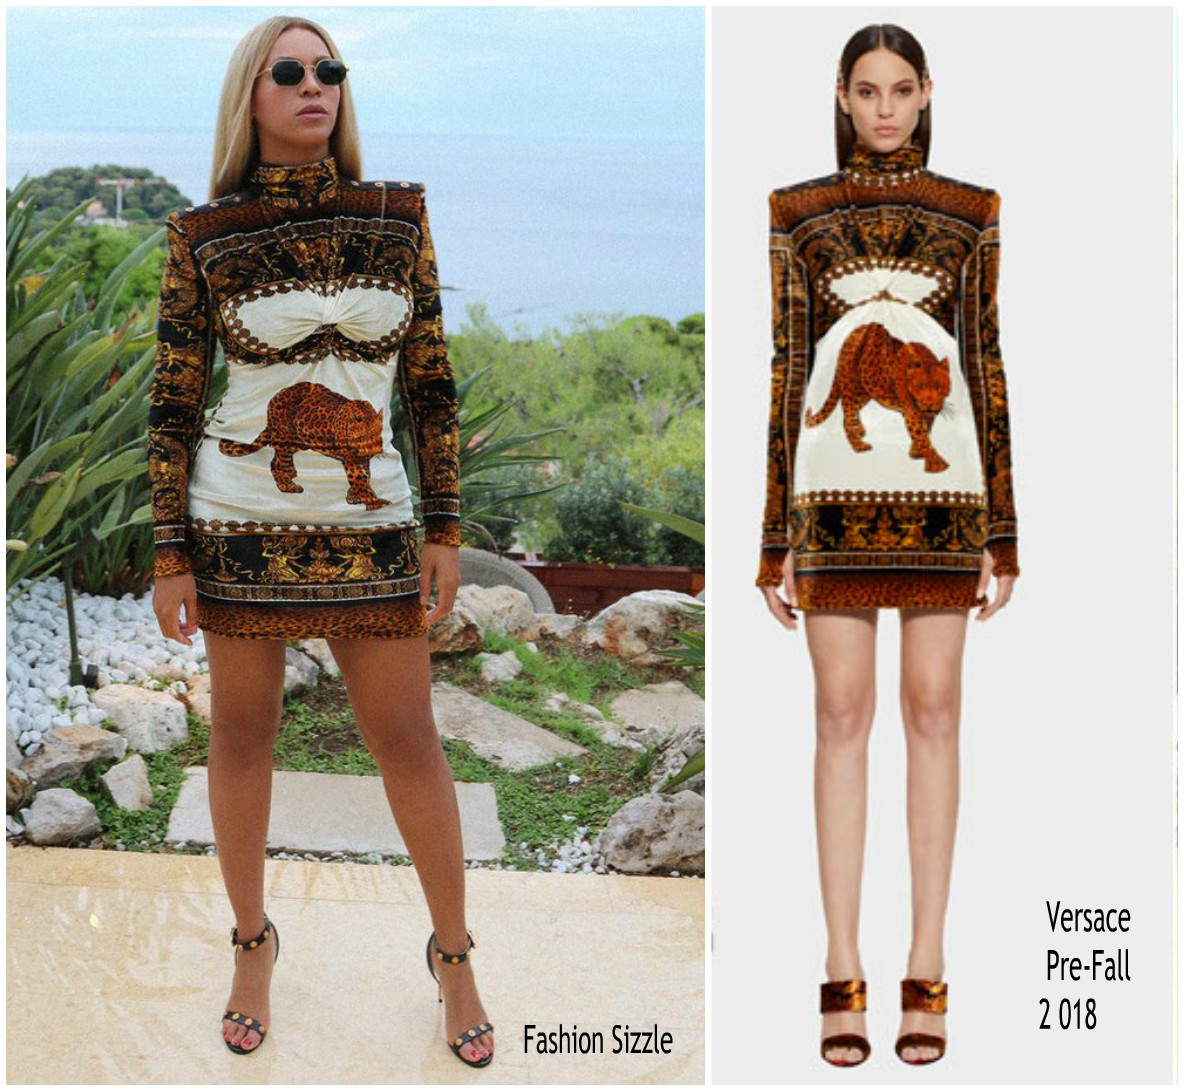 beyonce-knowles-vacations-in-versace